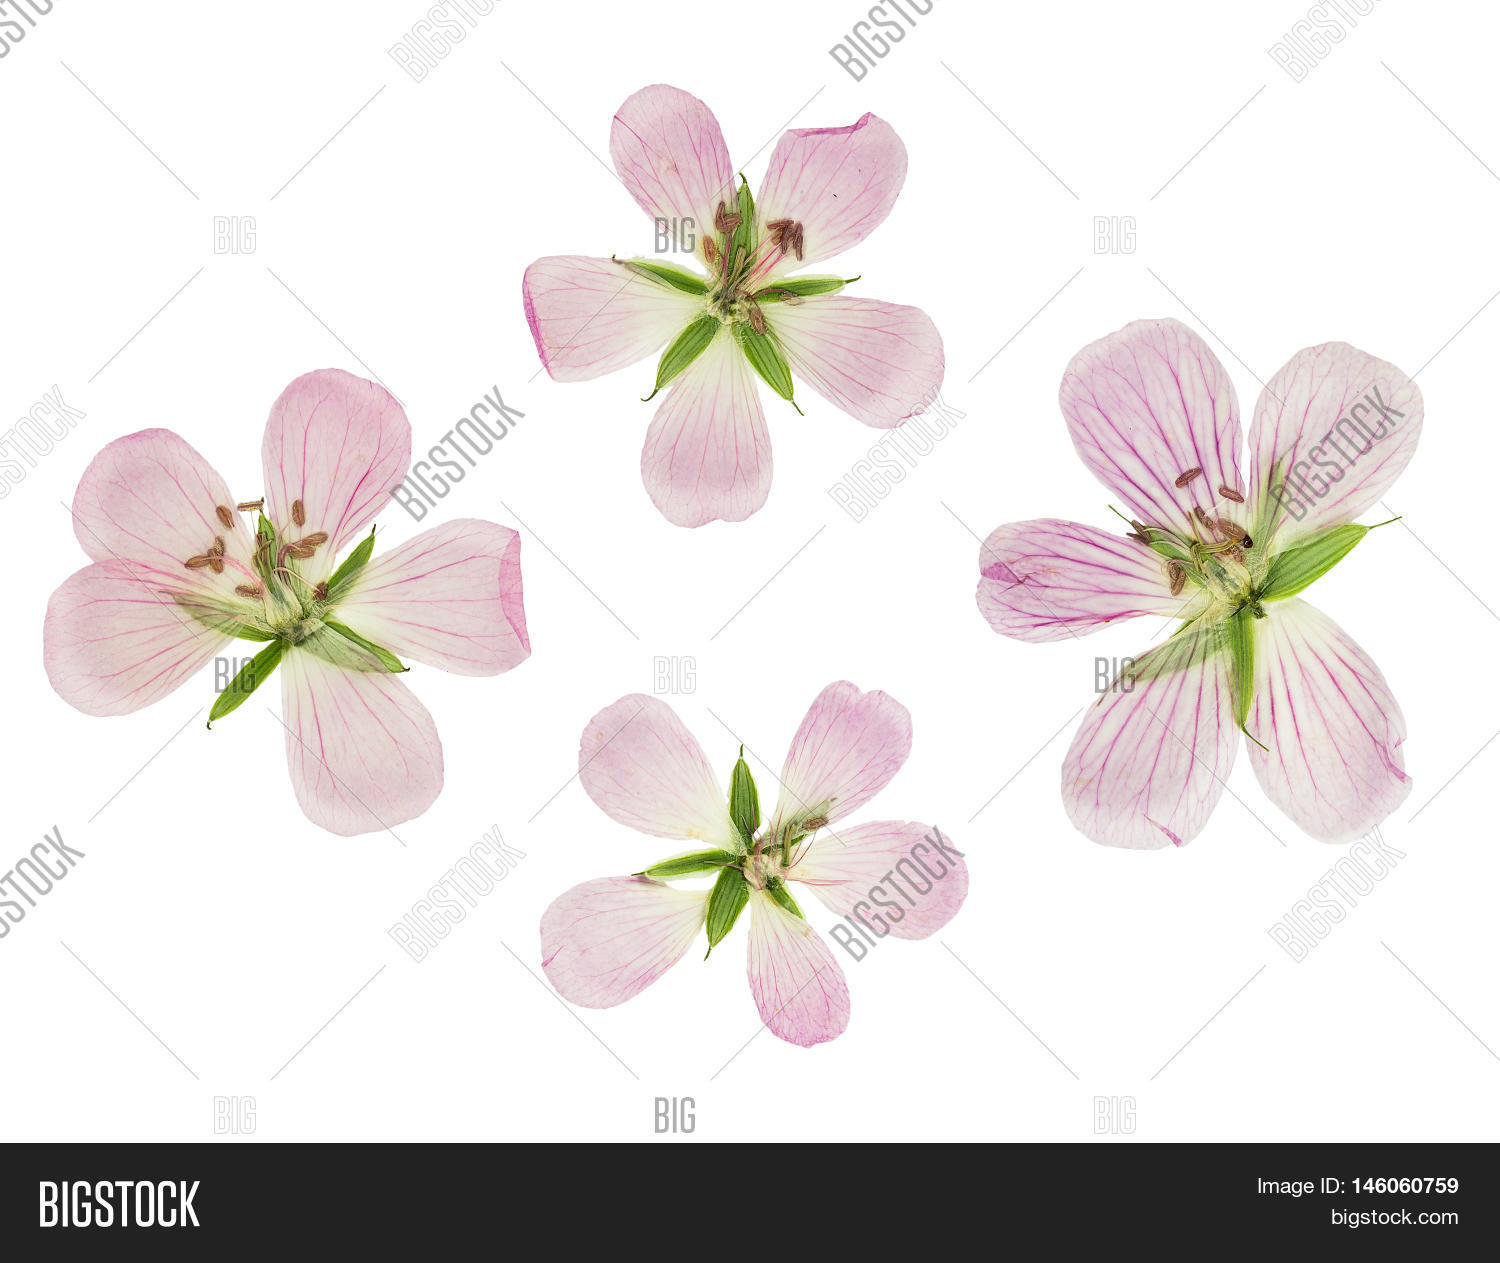 How to scrapbook dried flowers - Pressed And Dried Flowers Siberian Geranium Geranium Sibiricum Isolated On White Background